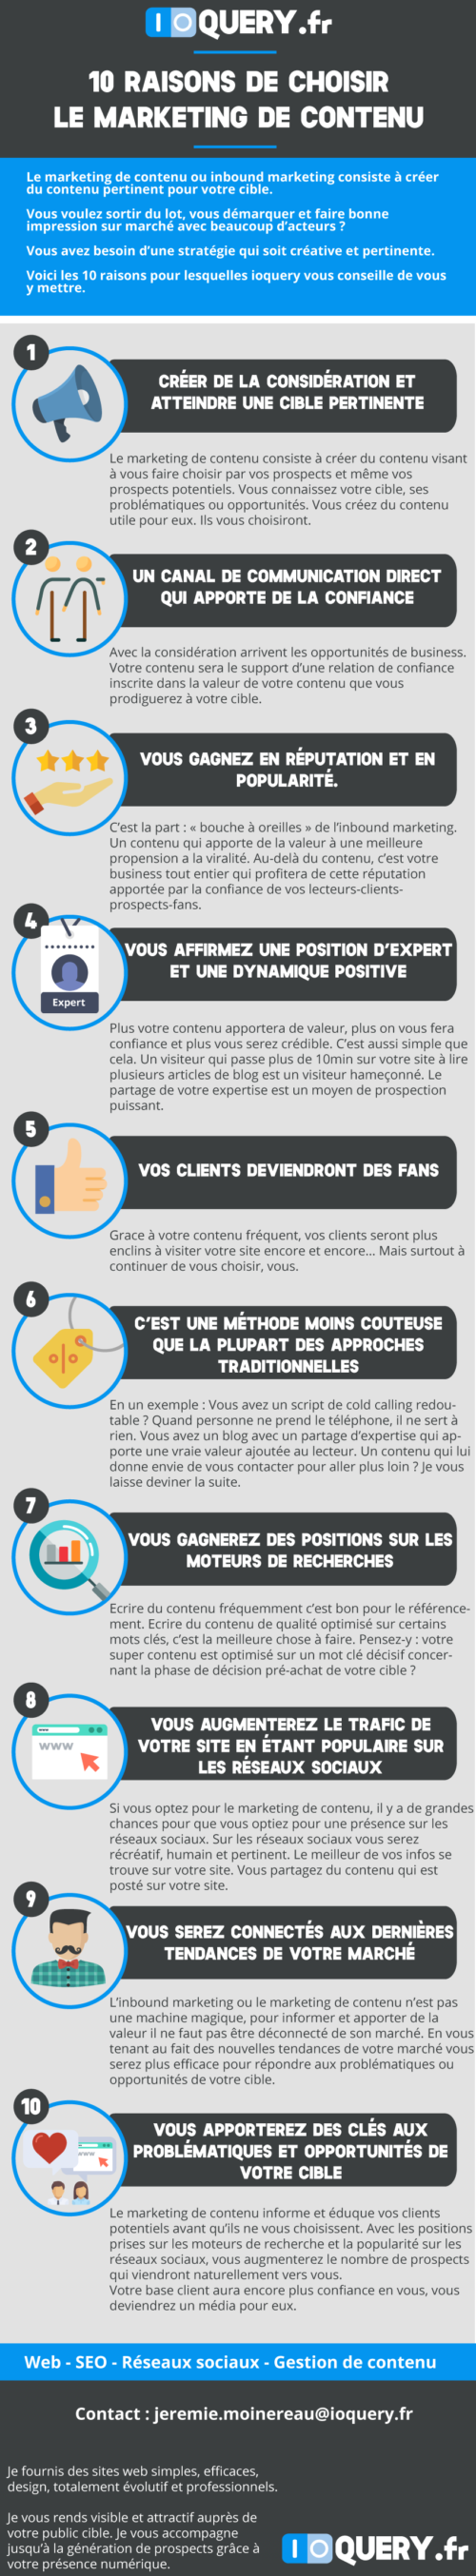 infographie-choisir-marketing-de-contenu